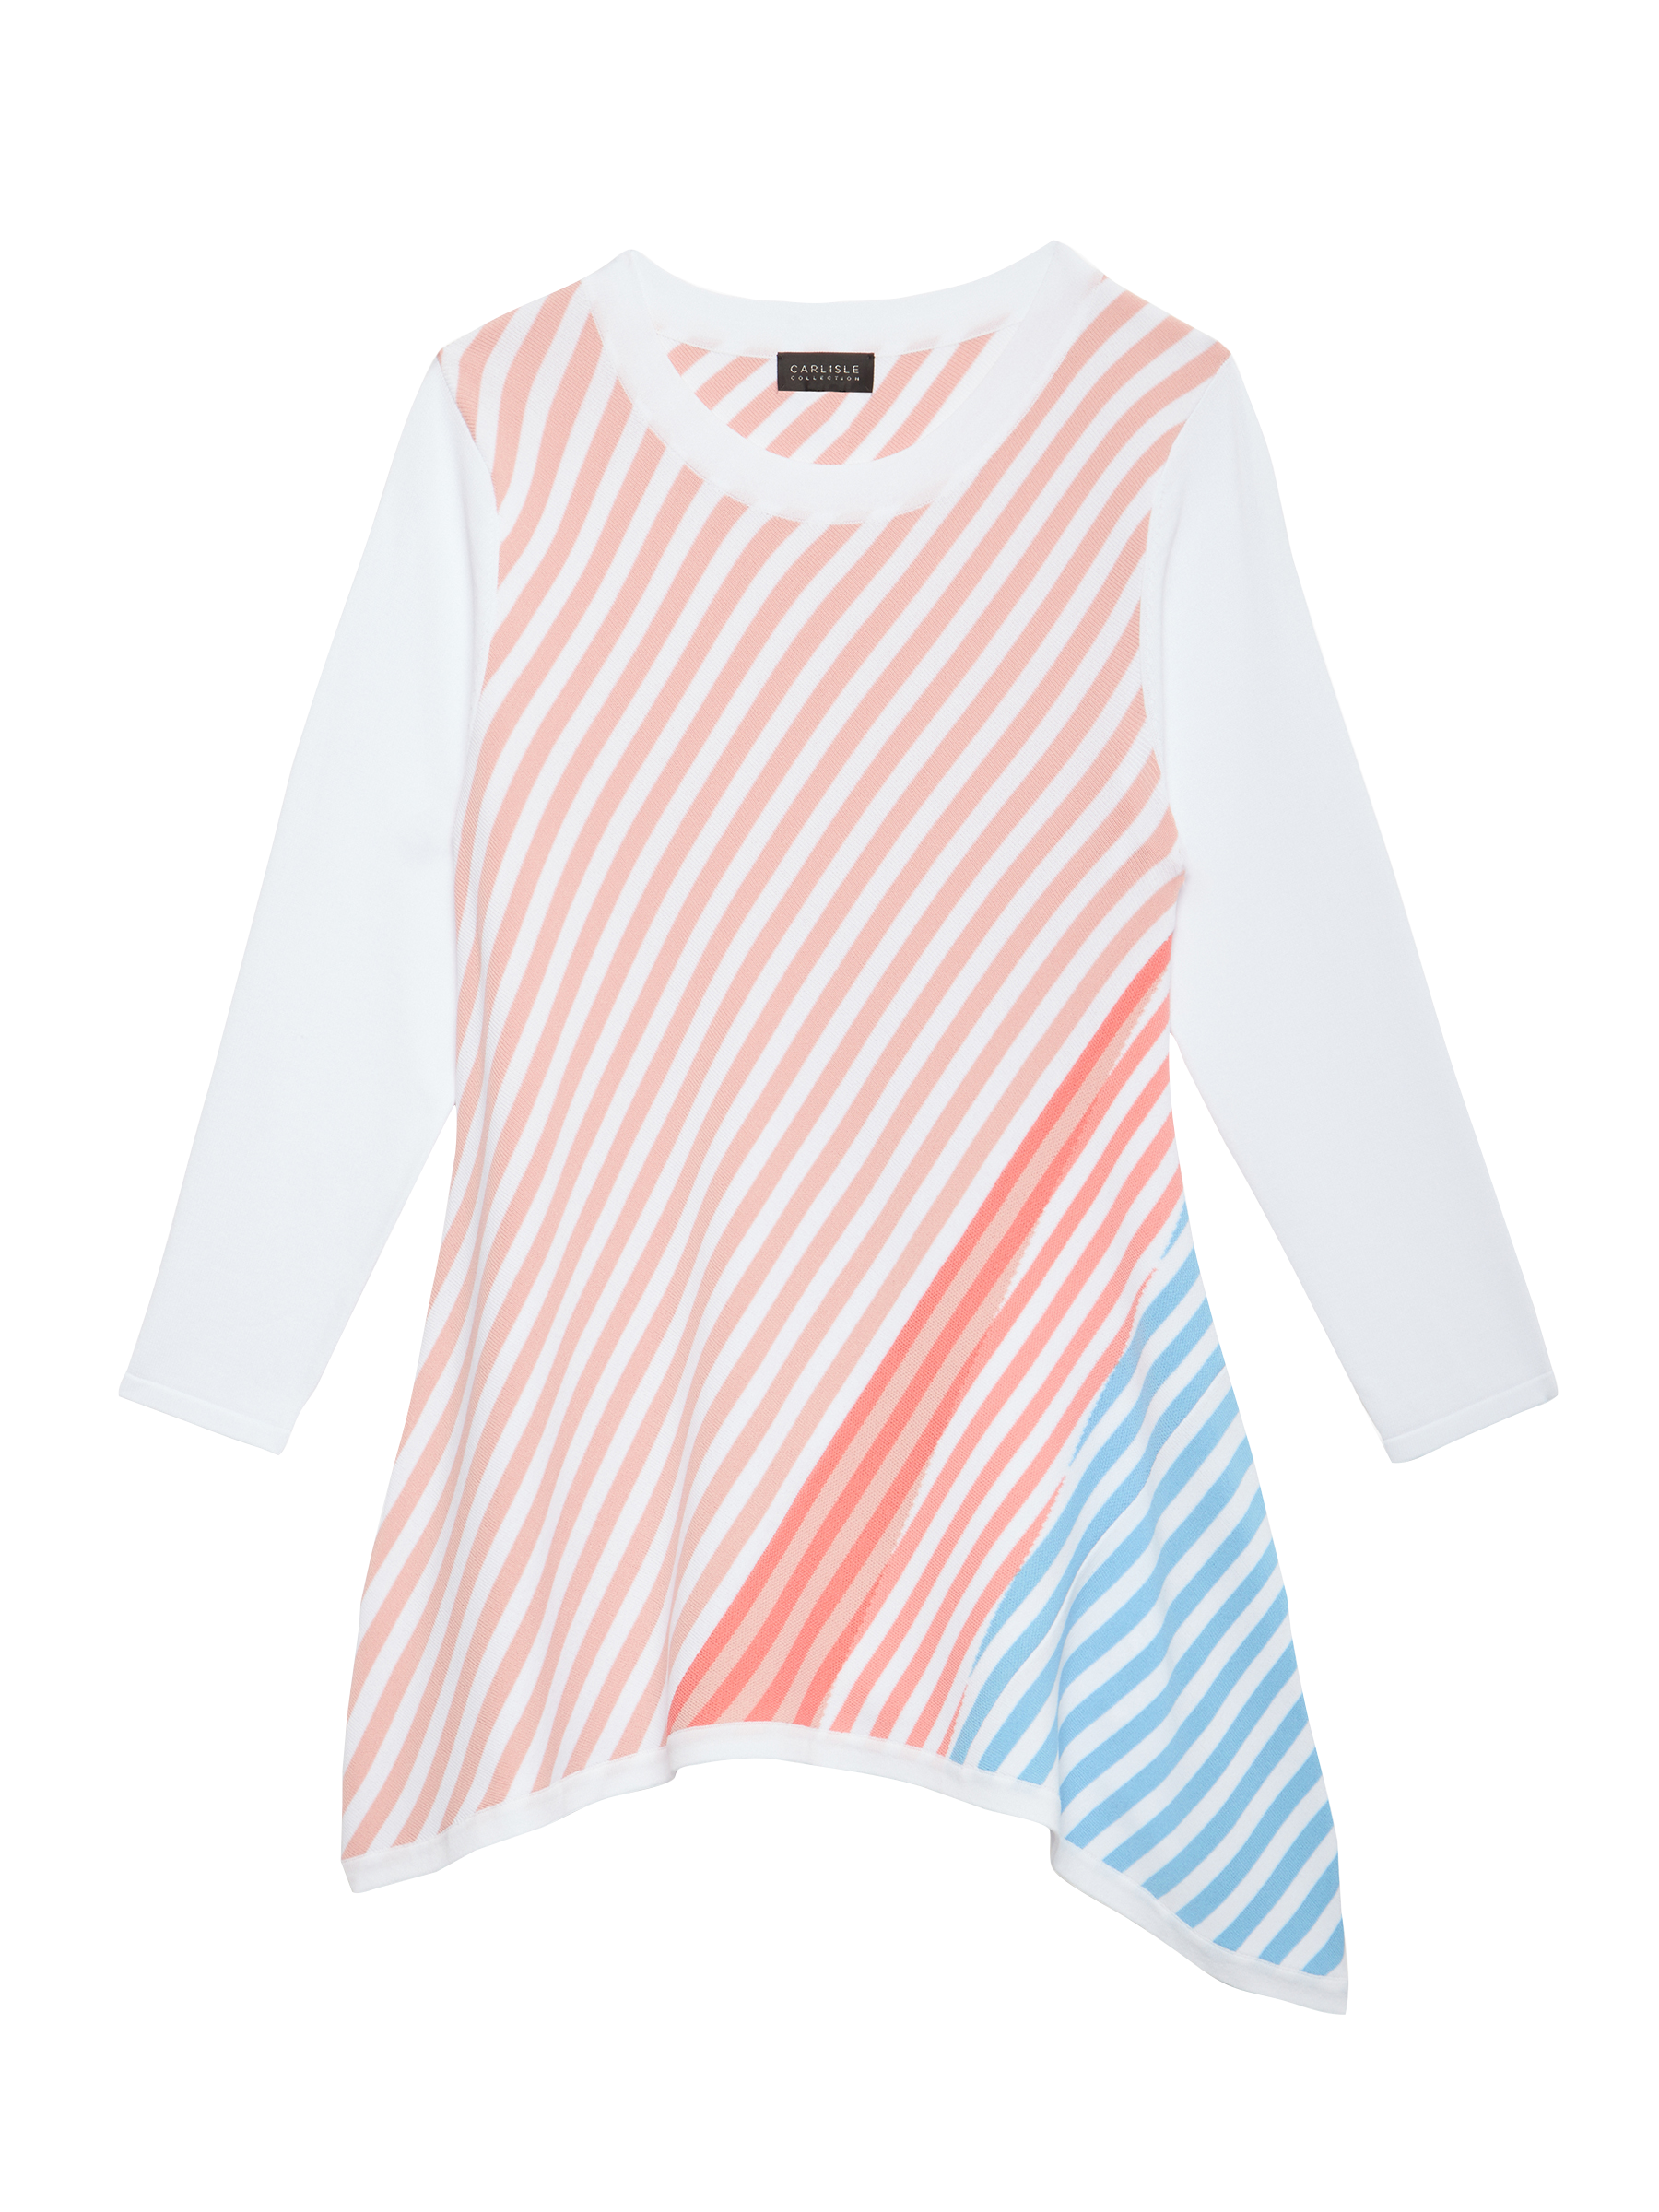 Asymmetrical colorful striped sweater in a drapey flared silhouette from Carlisle